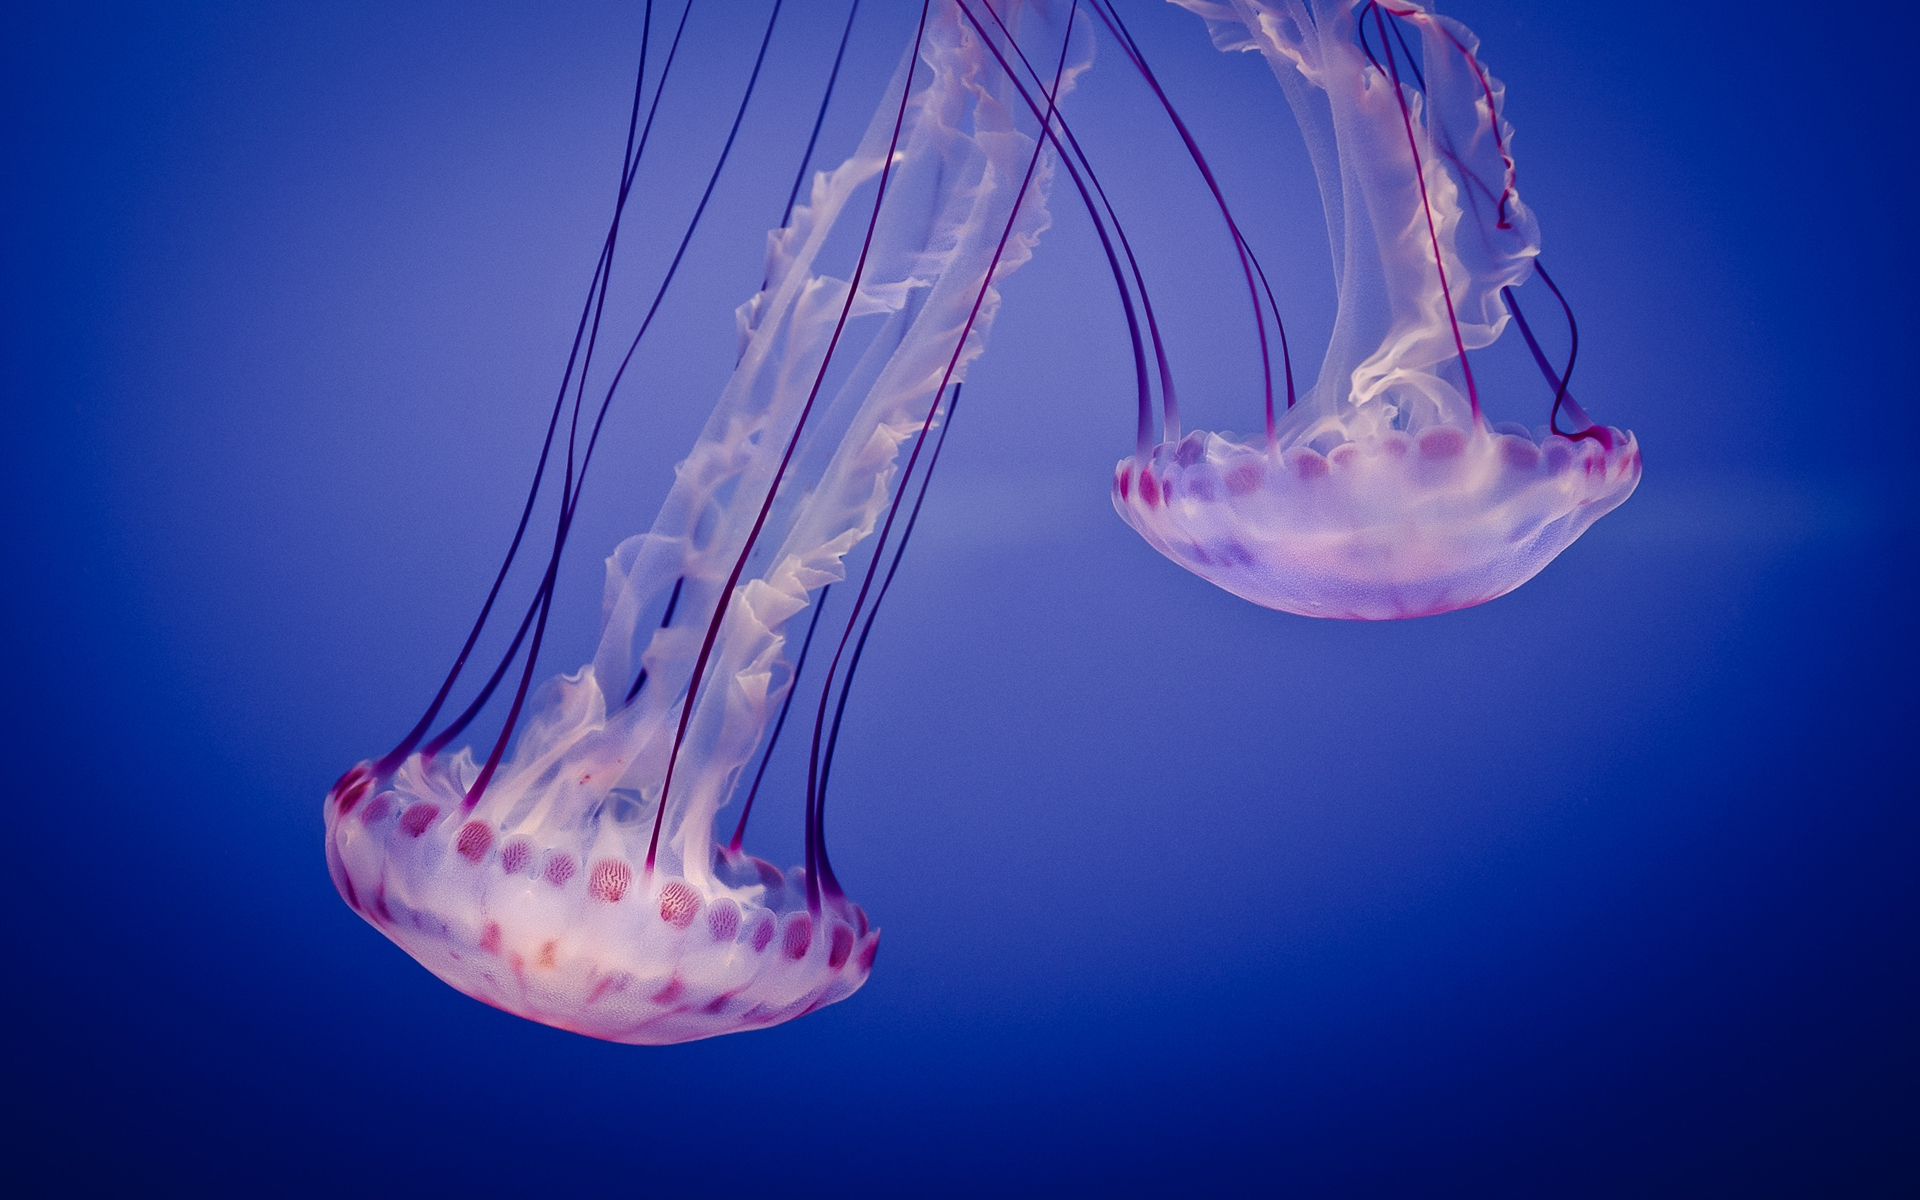 Jellyfish Wallpapers Hd